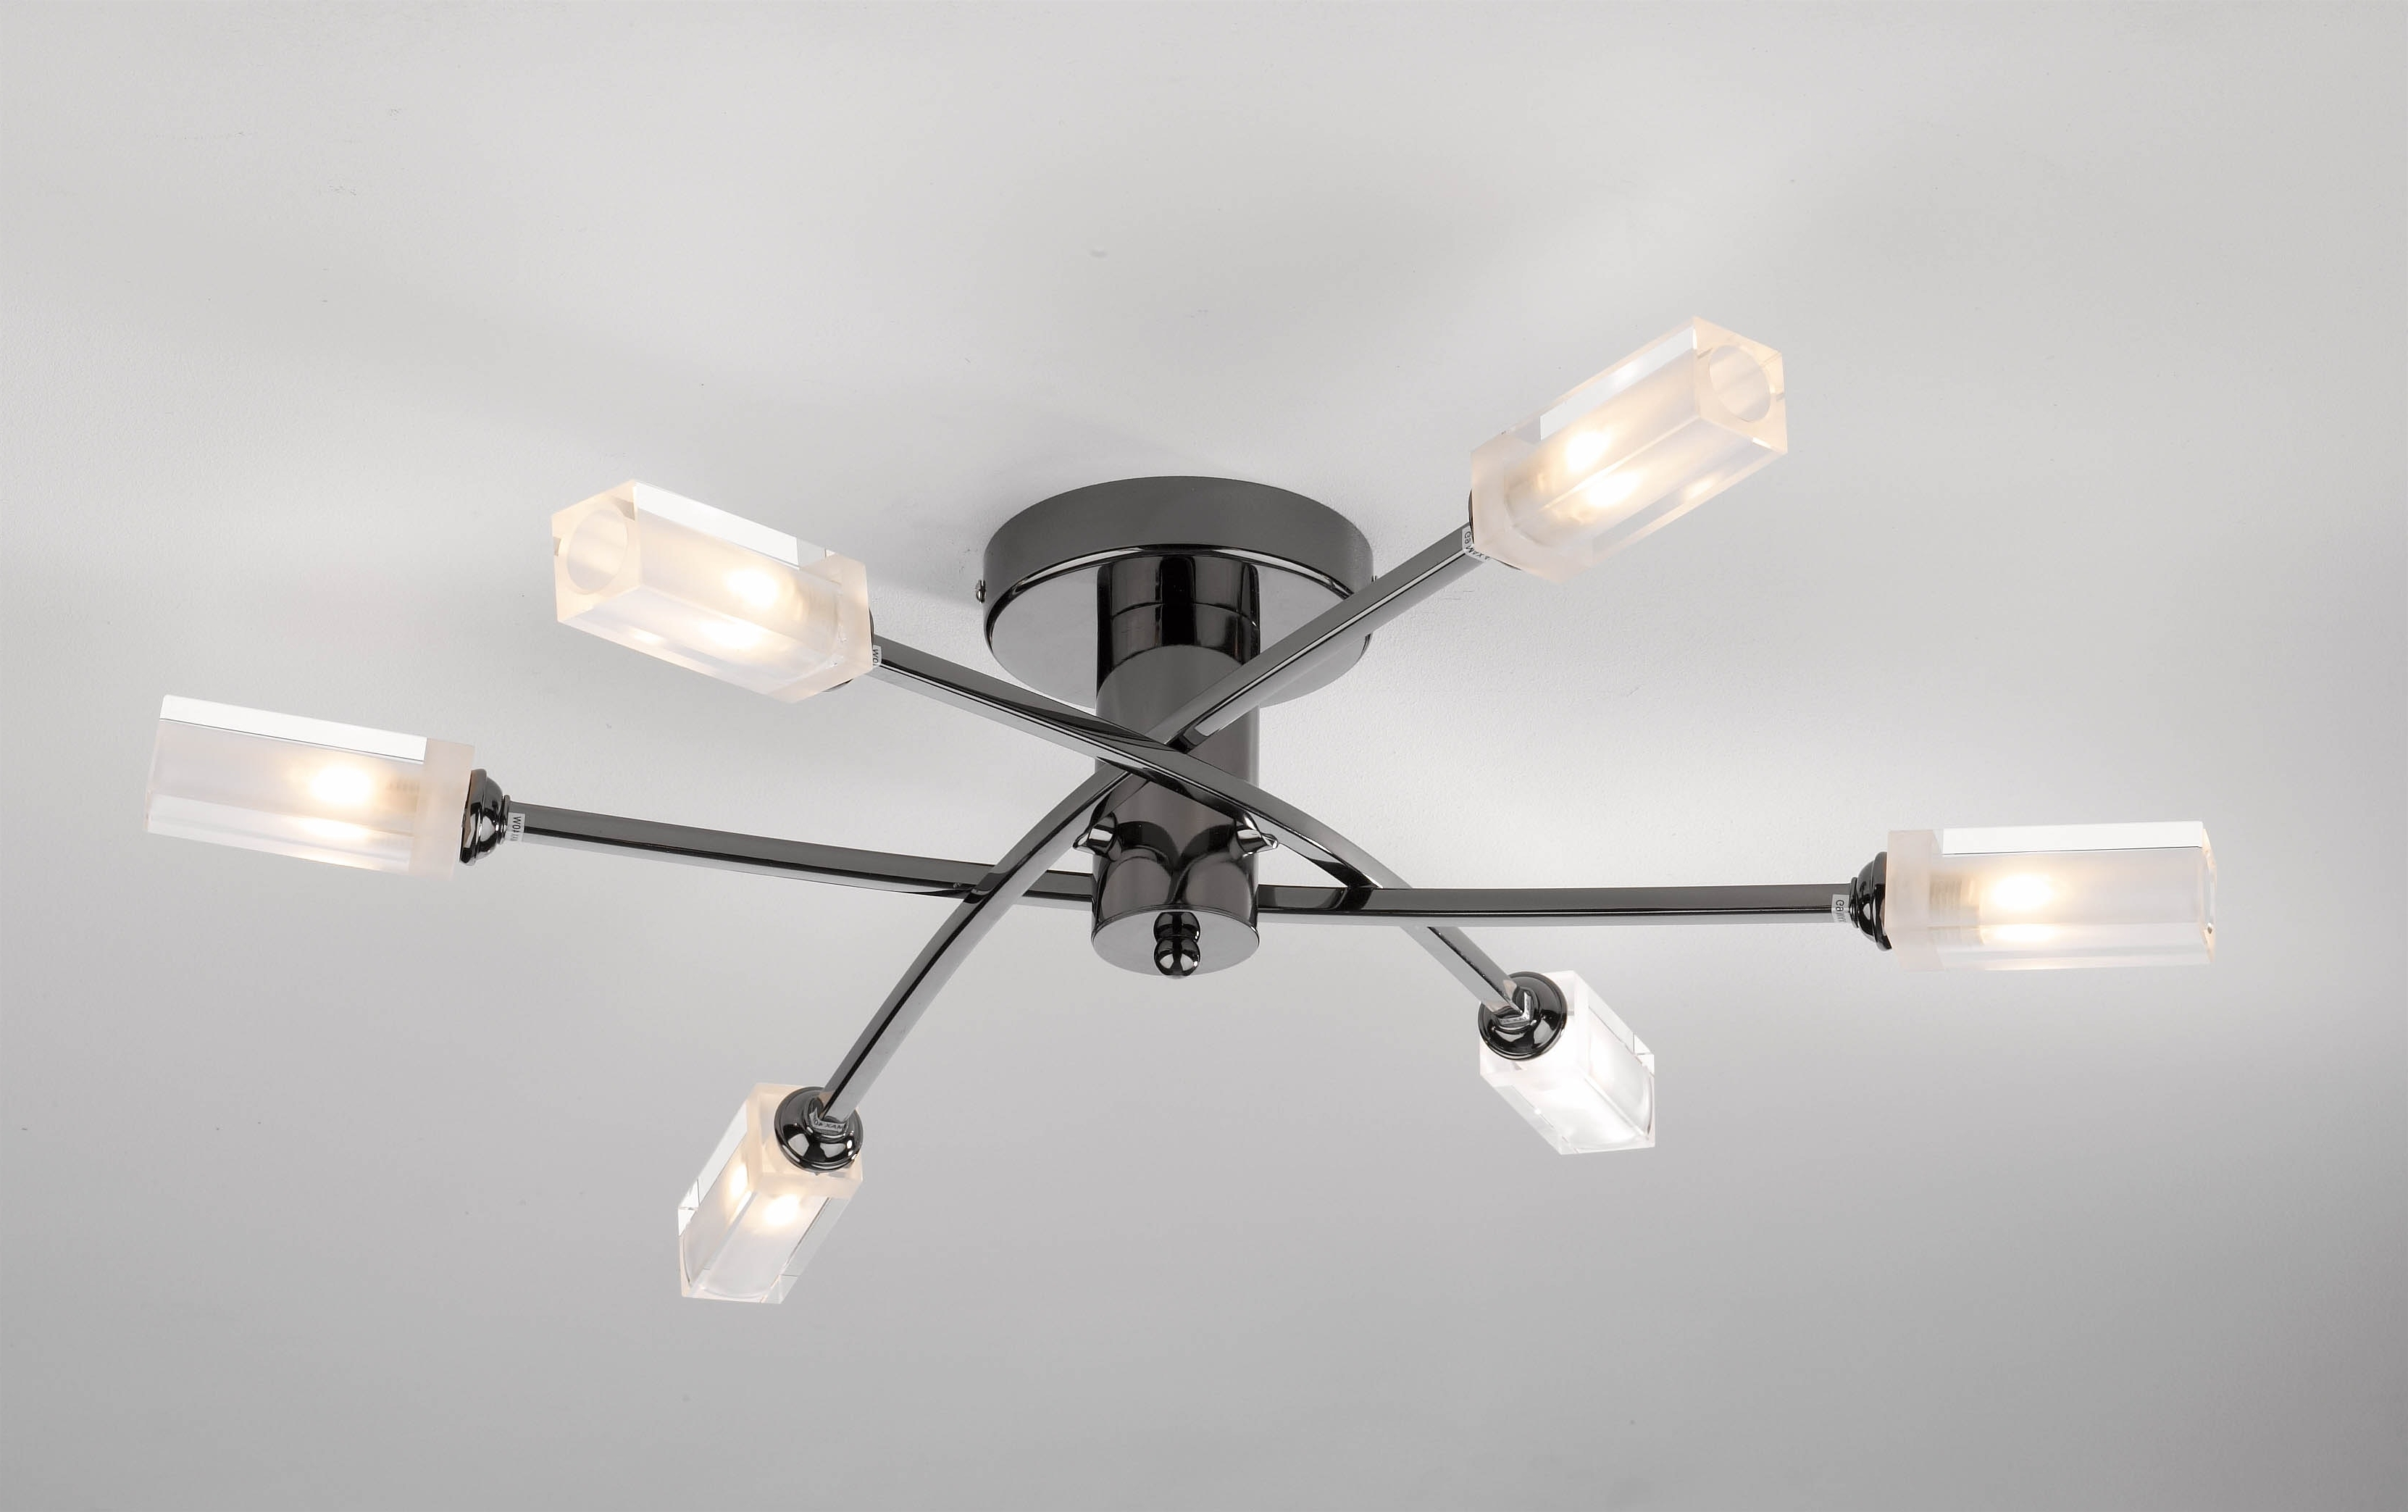 Current Outdoor Ceiling Lights At Homebase Inside Flush Ceiling Lights Homebase (View 4 of 20)